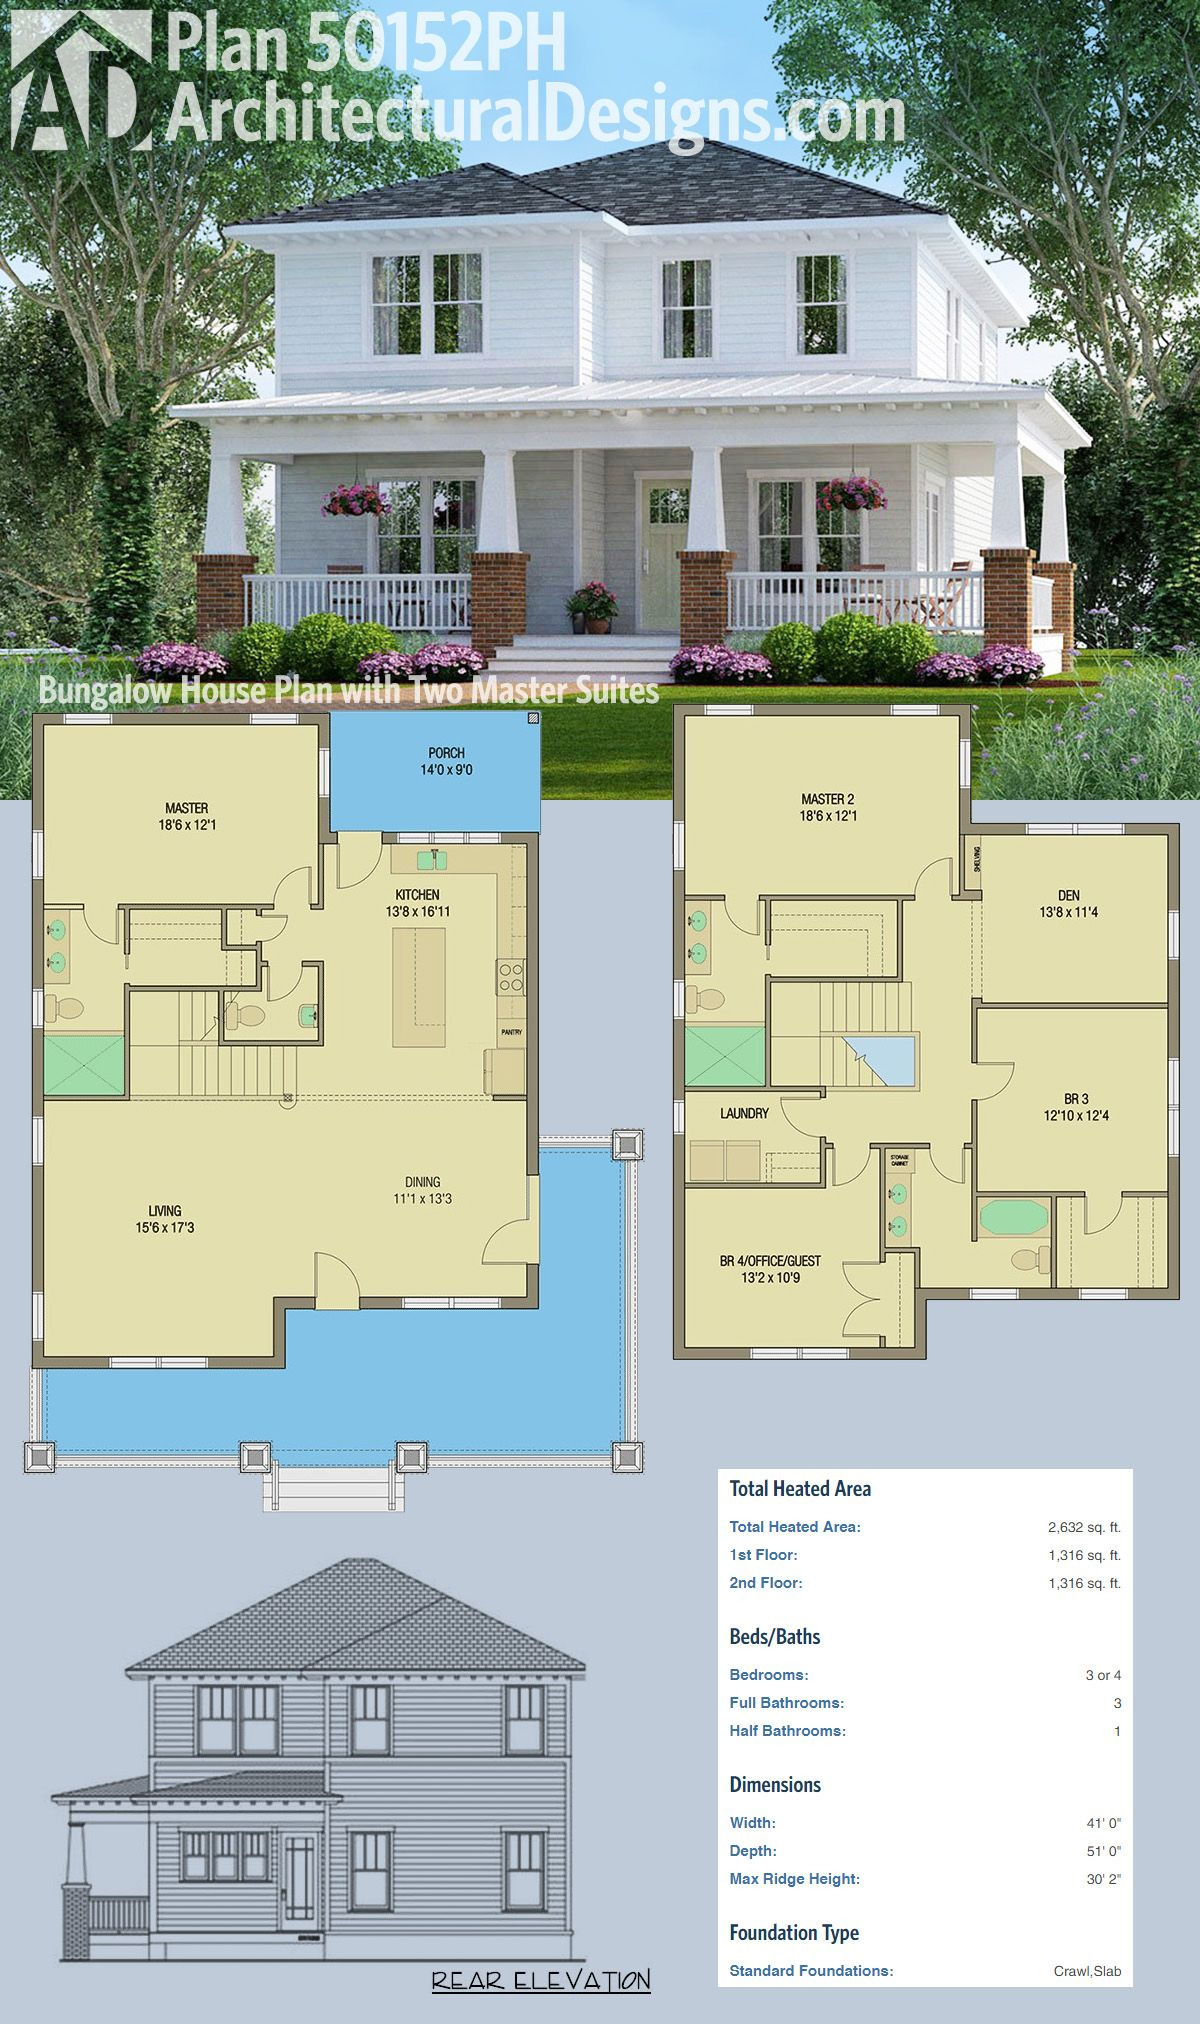 2 Bedroom House Plans with 2 Master Suites Inspirational Plan Ph Bungalow House Plan with Two Master Suites